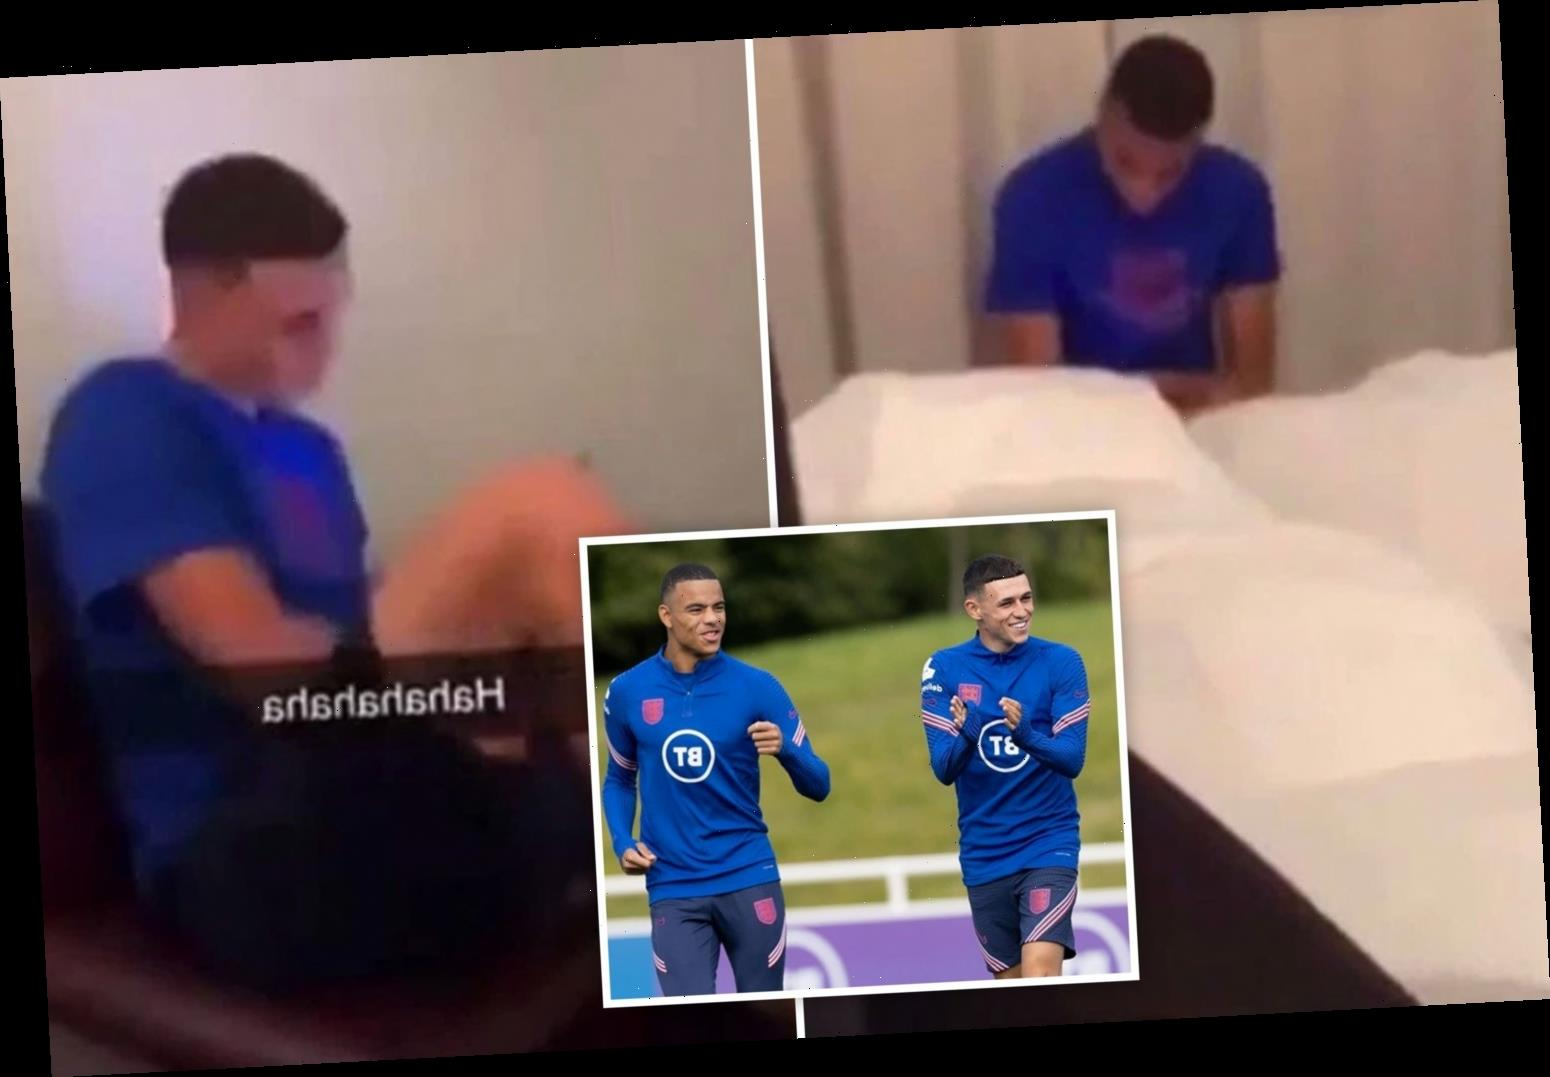 Phil Foden and Mason Greenwood AXED by England after Man City & Utd stars 'invite girls to hotel' breaking Covid rules